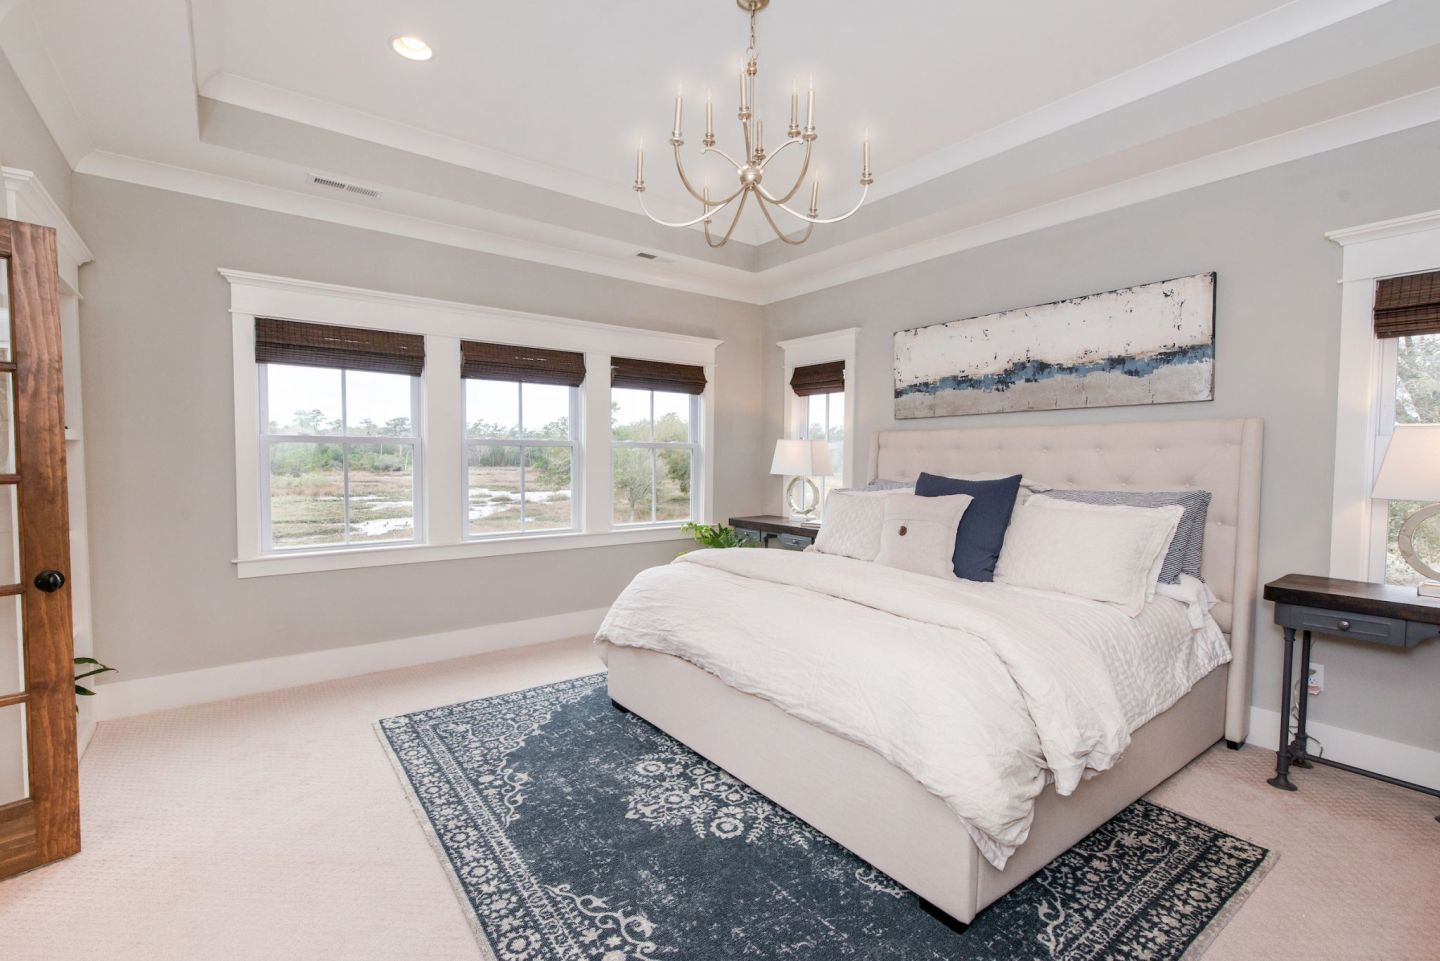 The Isle Home - Home Tour - Master Bedroom